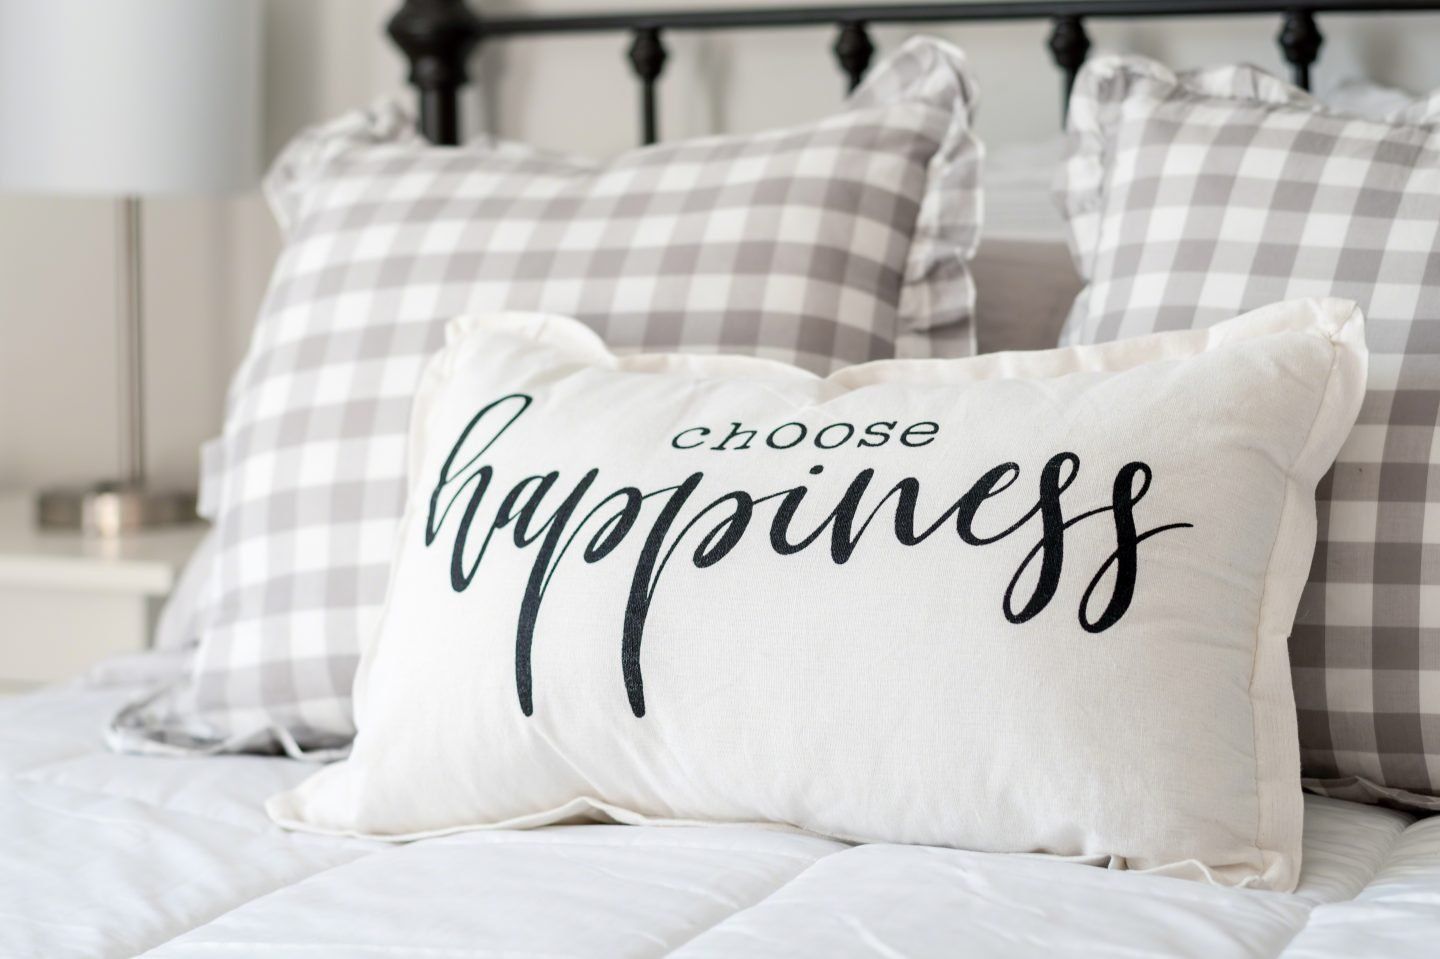 """Bedroom decor - """"choose happiness"""" pillow on iron bed"""